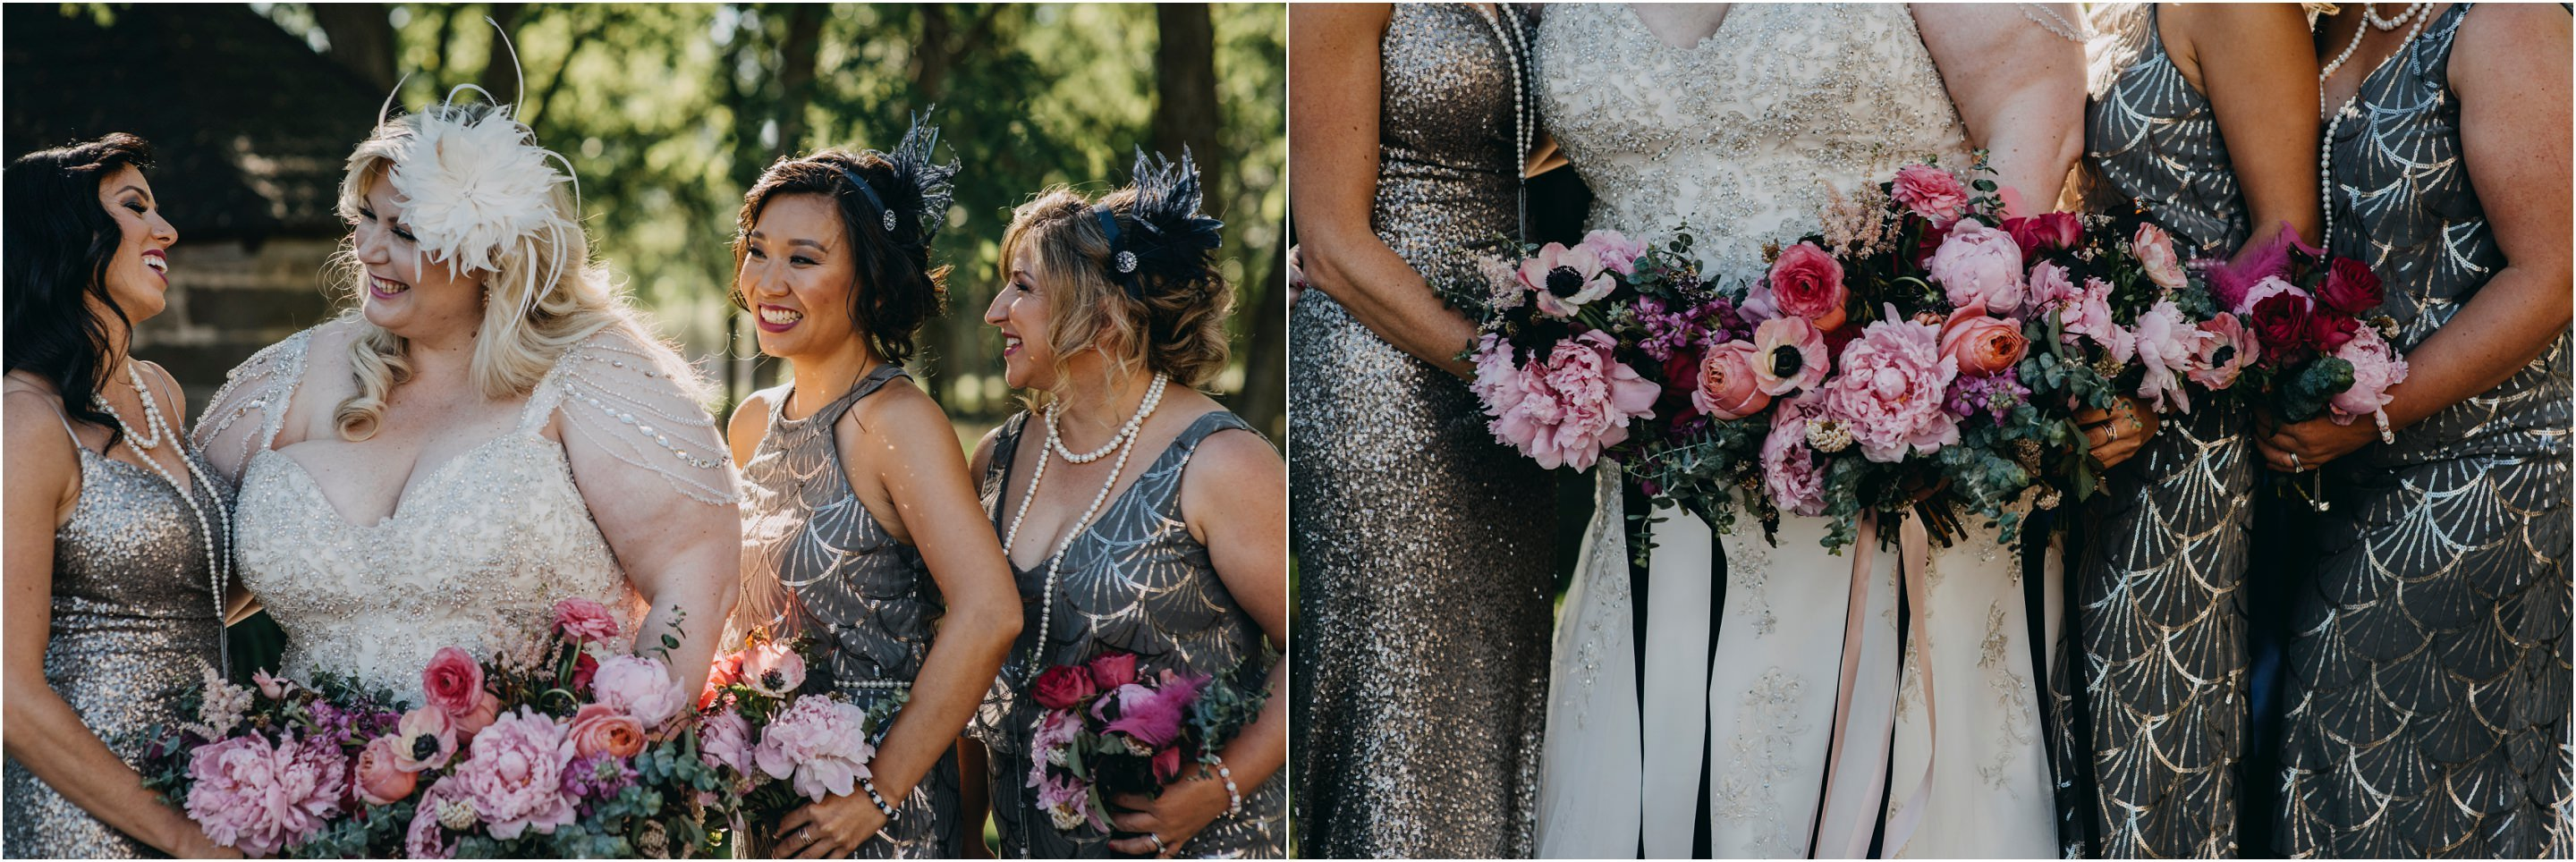 Stonefields Great Gatsby Wedding by Cindy Lottes Photography